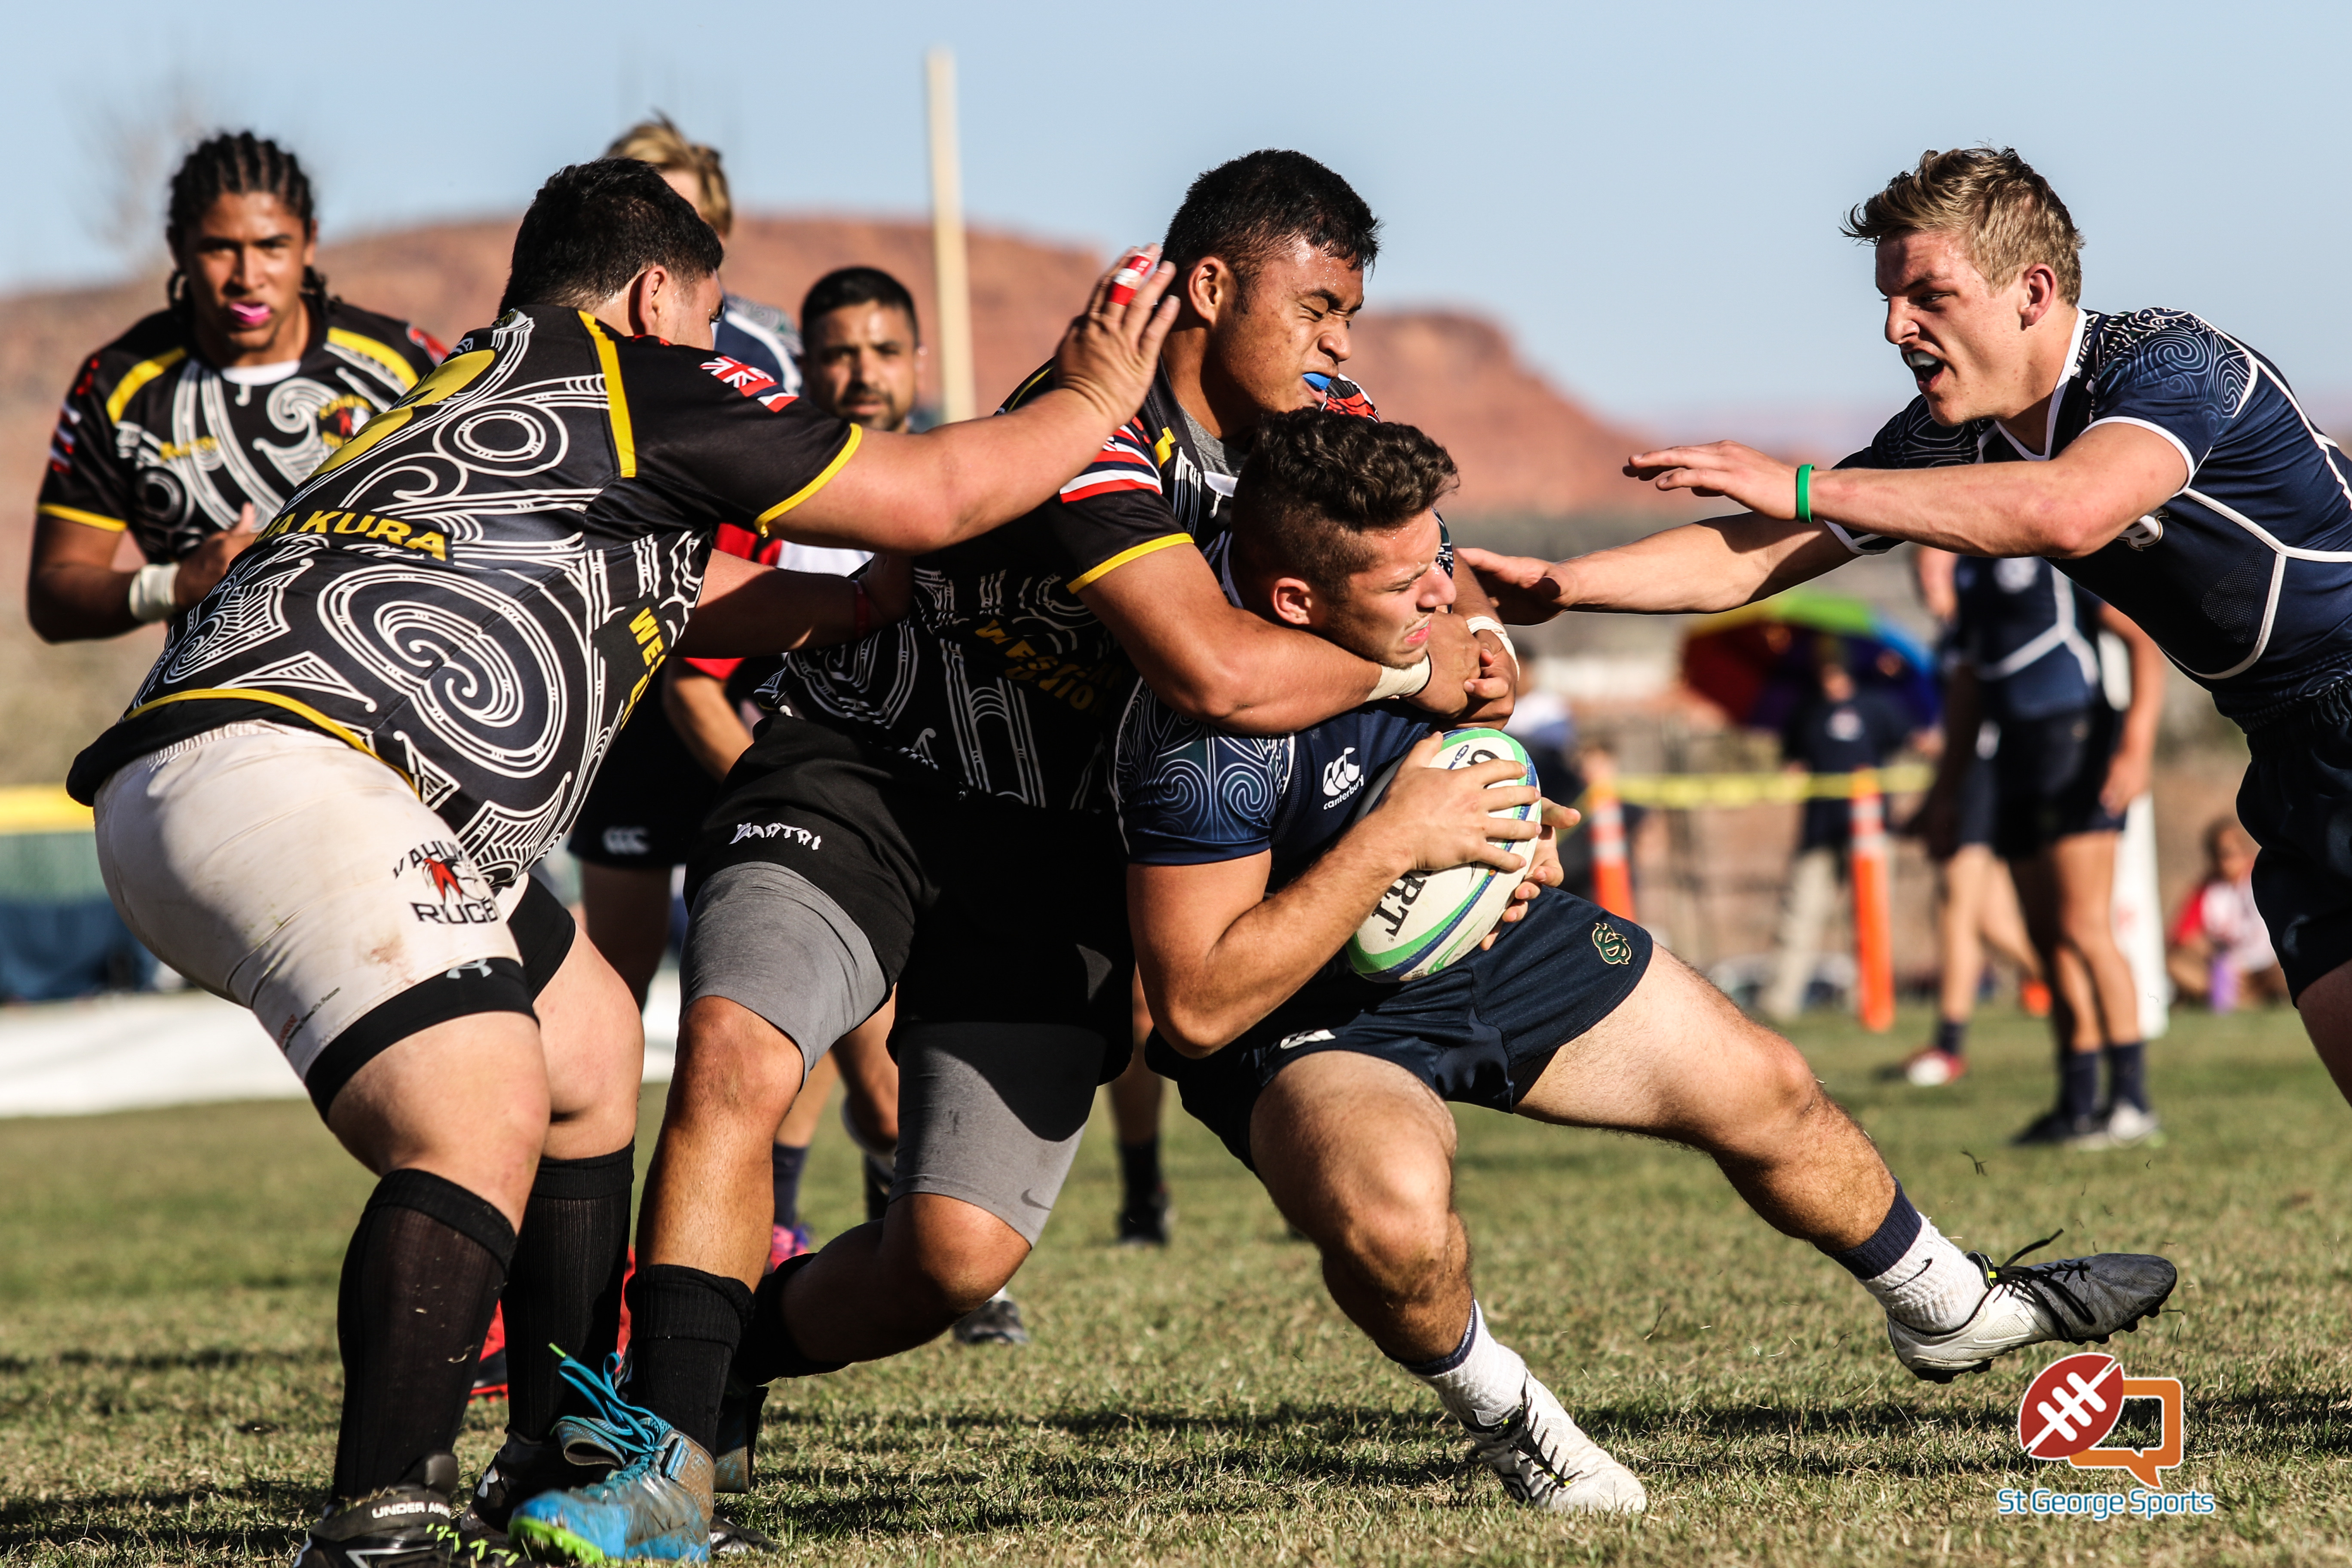 Snow Canyon vs. Kahuku, Rugby, Snow Canyon Invitational, St George, Utah, Feb. 27, 2016, | Photo by Kevin Luthy, St. George News